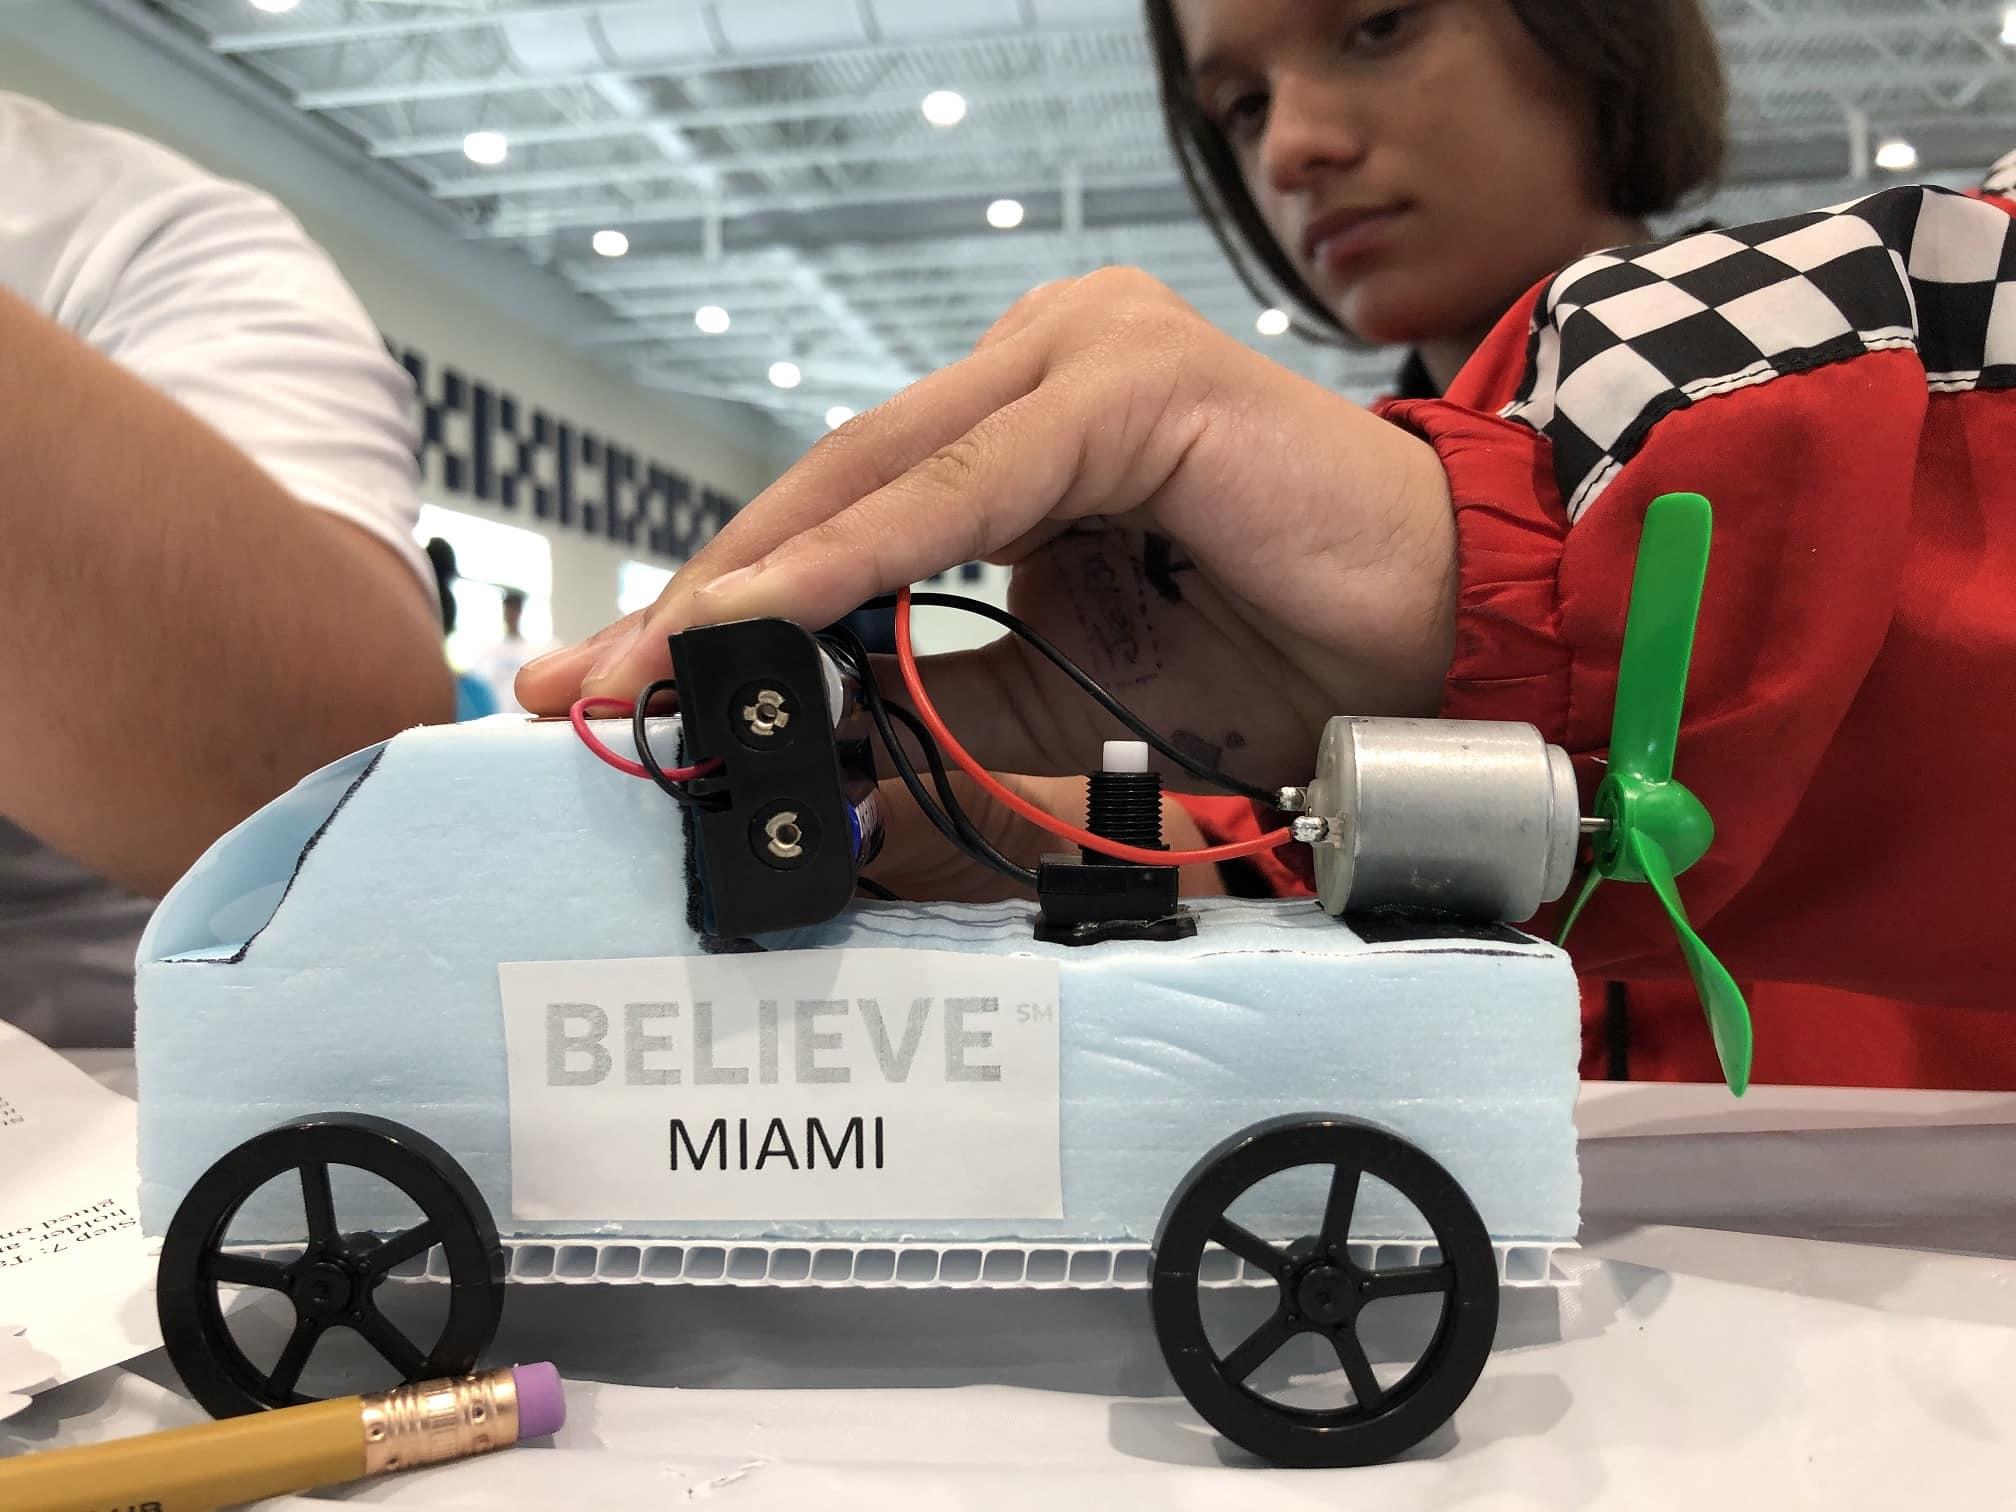 Believe_Miami_completed_car-10.26.19.jpg